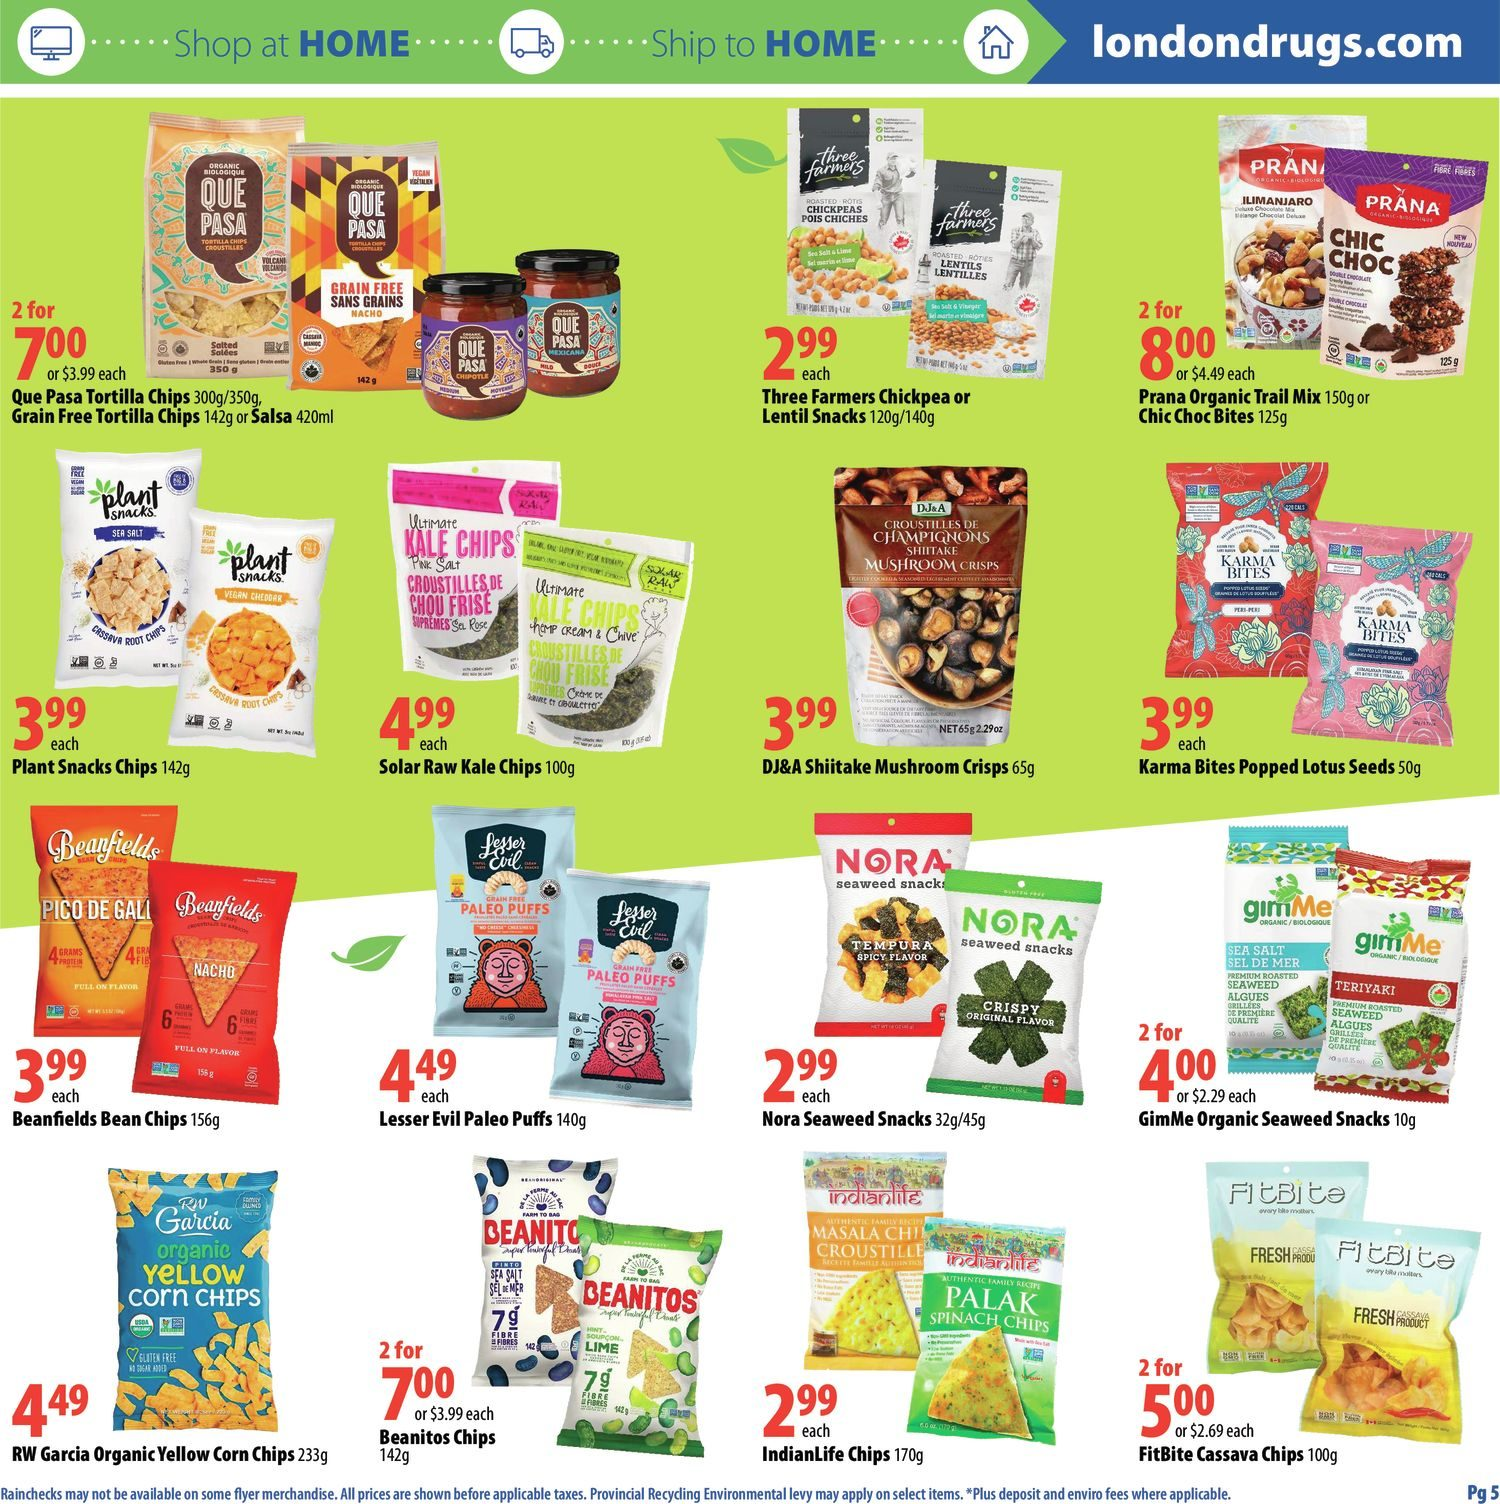 London Drugs - Veganuary - Page 7